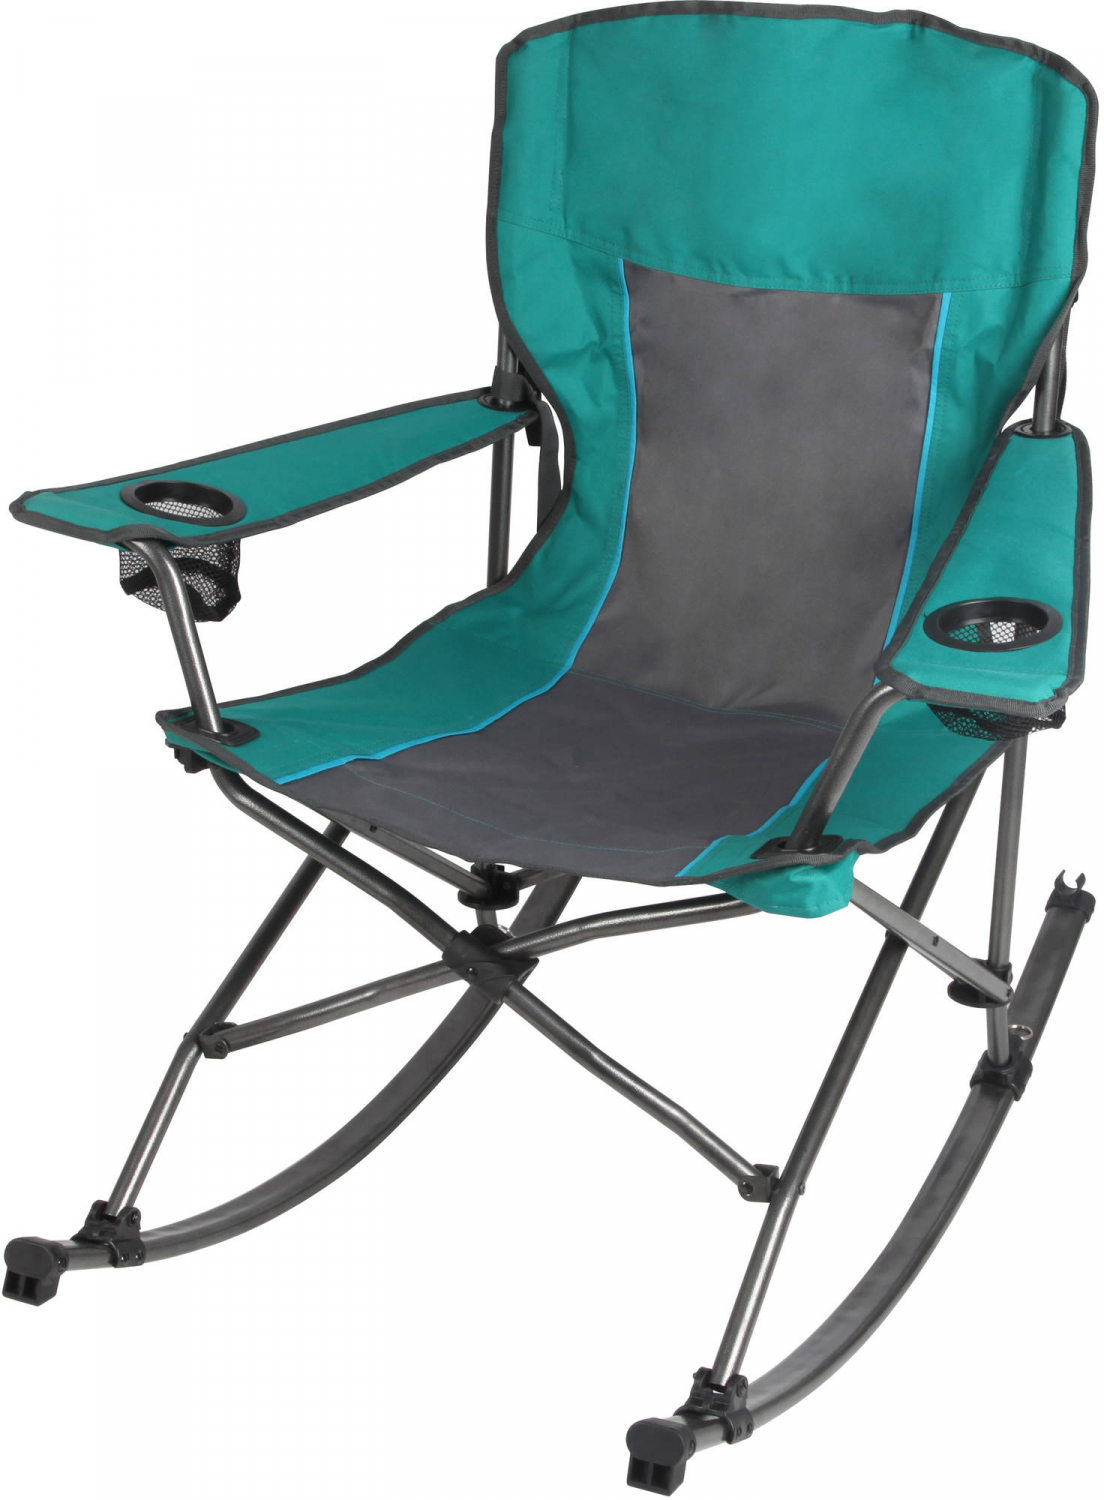 Amazing Details About Folding Camping Rocking Chair With 2 Cup Holders Ozark Trail Fireside Inzonedesignstudio Interior Chair Design Inzonedesignstudiocom